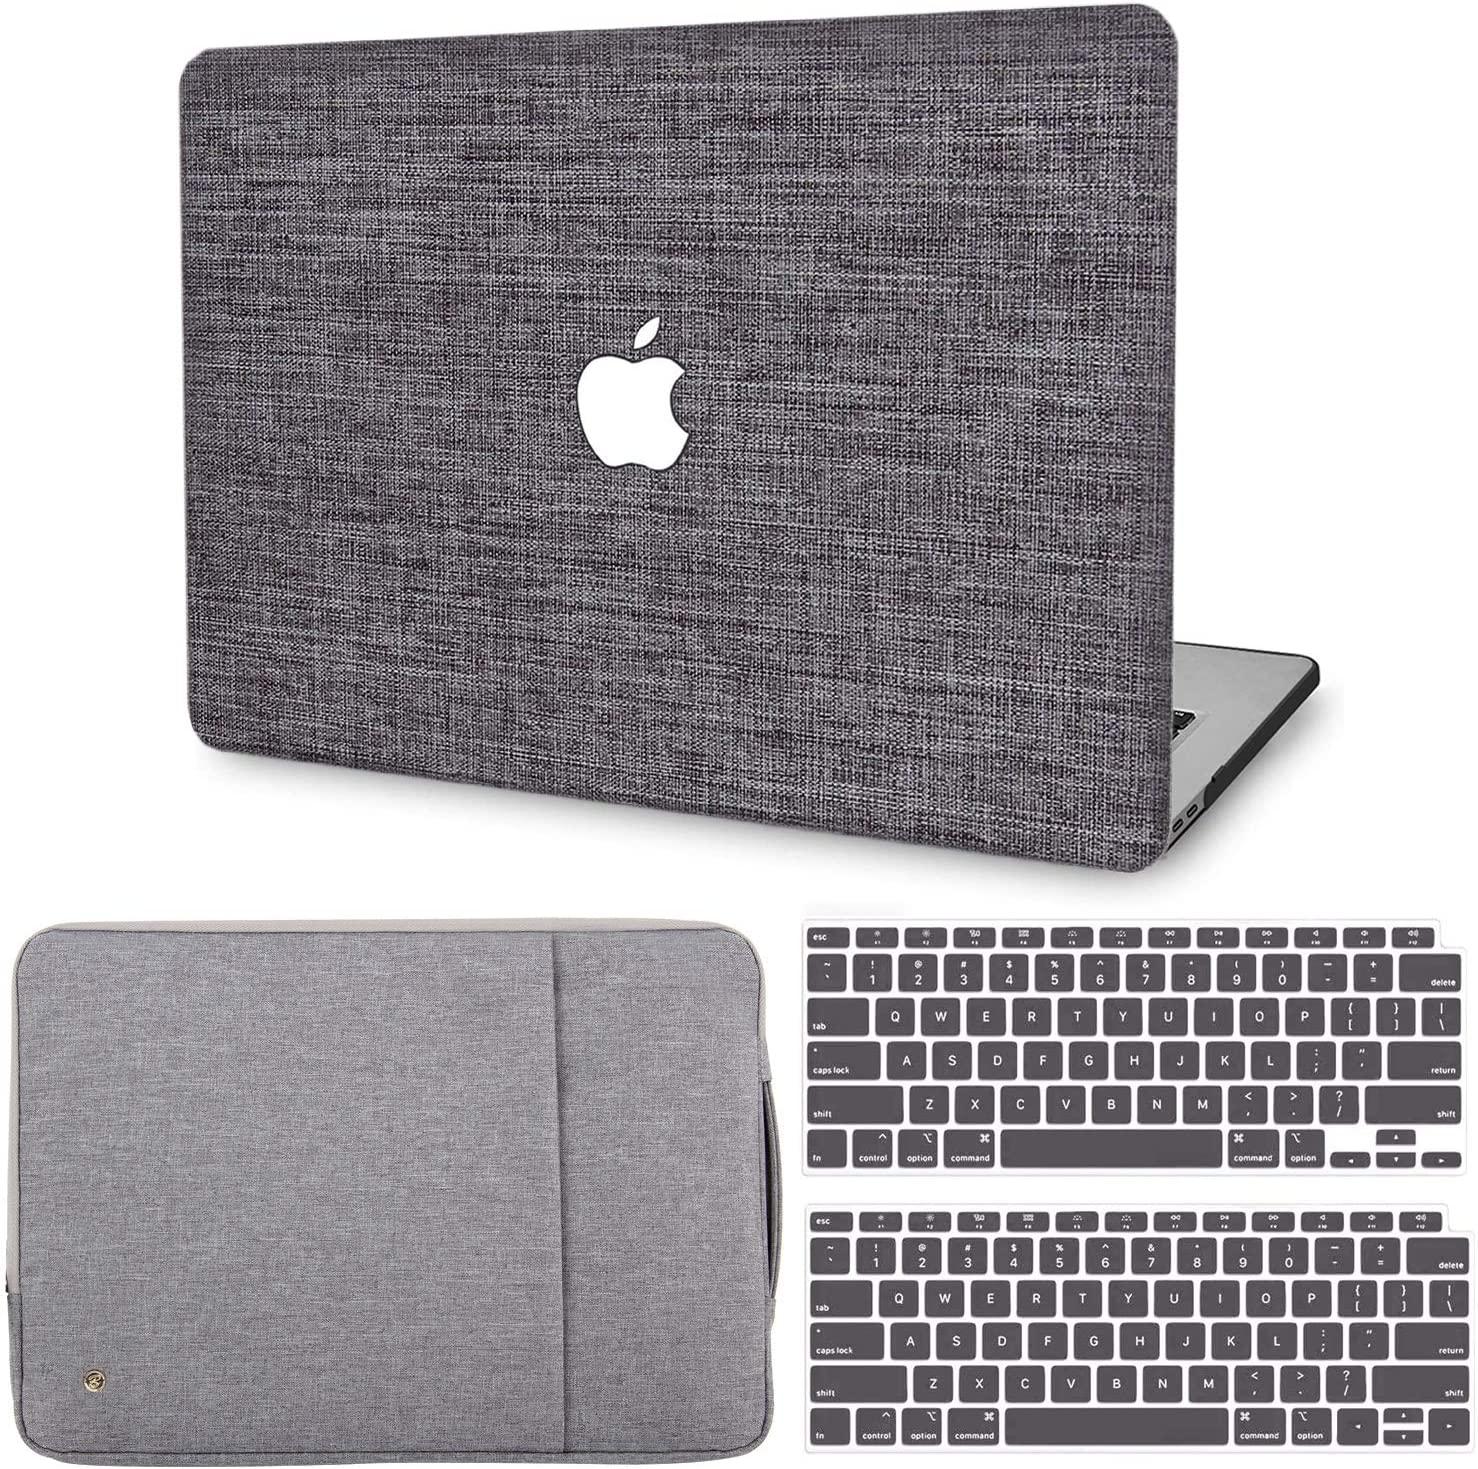 MacBook Air 13 Inch Case 2020 2019 2018 Release M1 A2337 A2179 A1932, G JGOO MacBook Air 2020 Case Touch ID, Fabric Hard Shell Case + Laptop Sleeve + Keyboard Cover Compatible with Mac Air 13 Retina